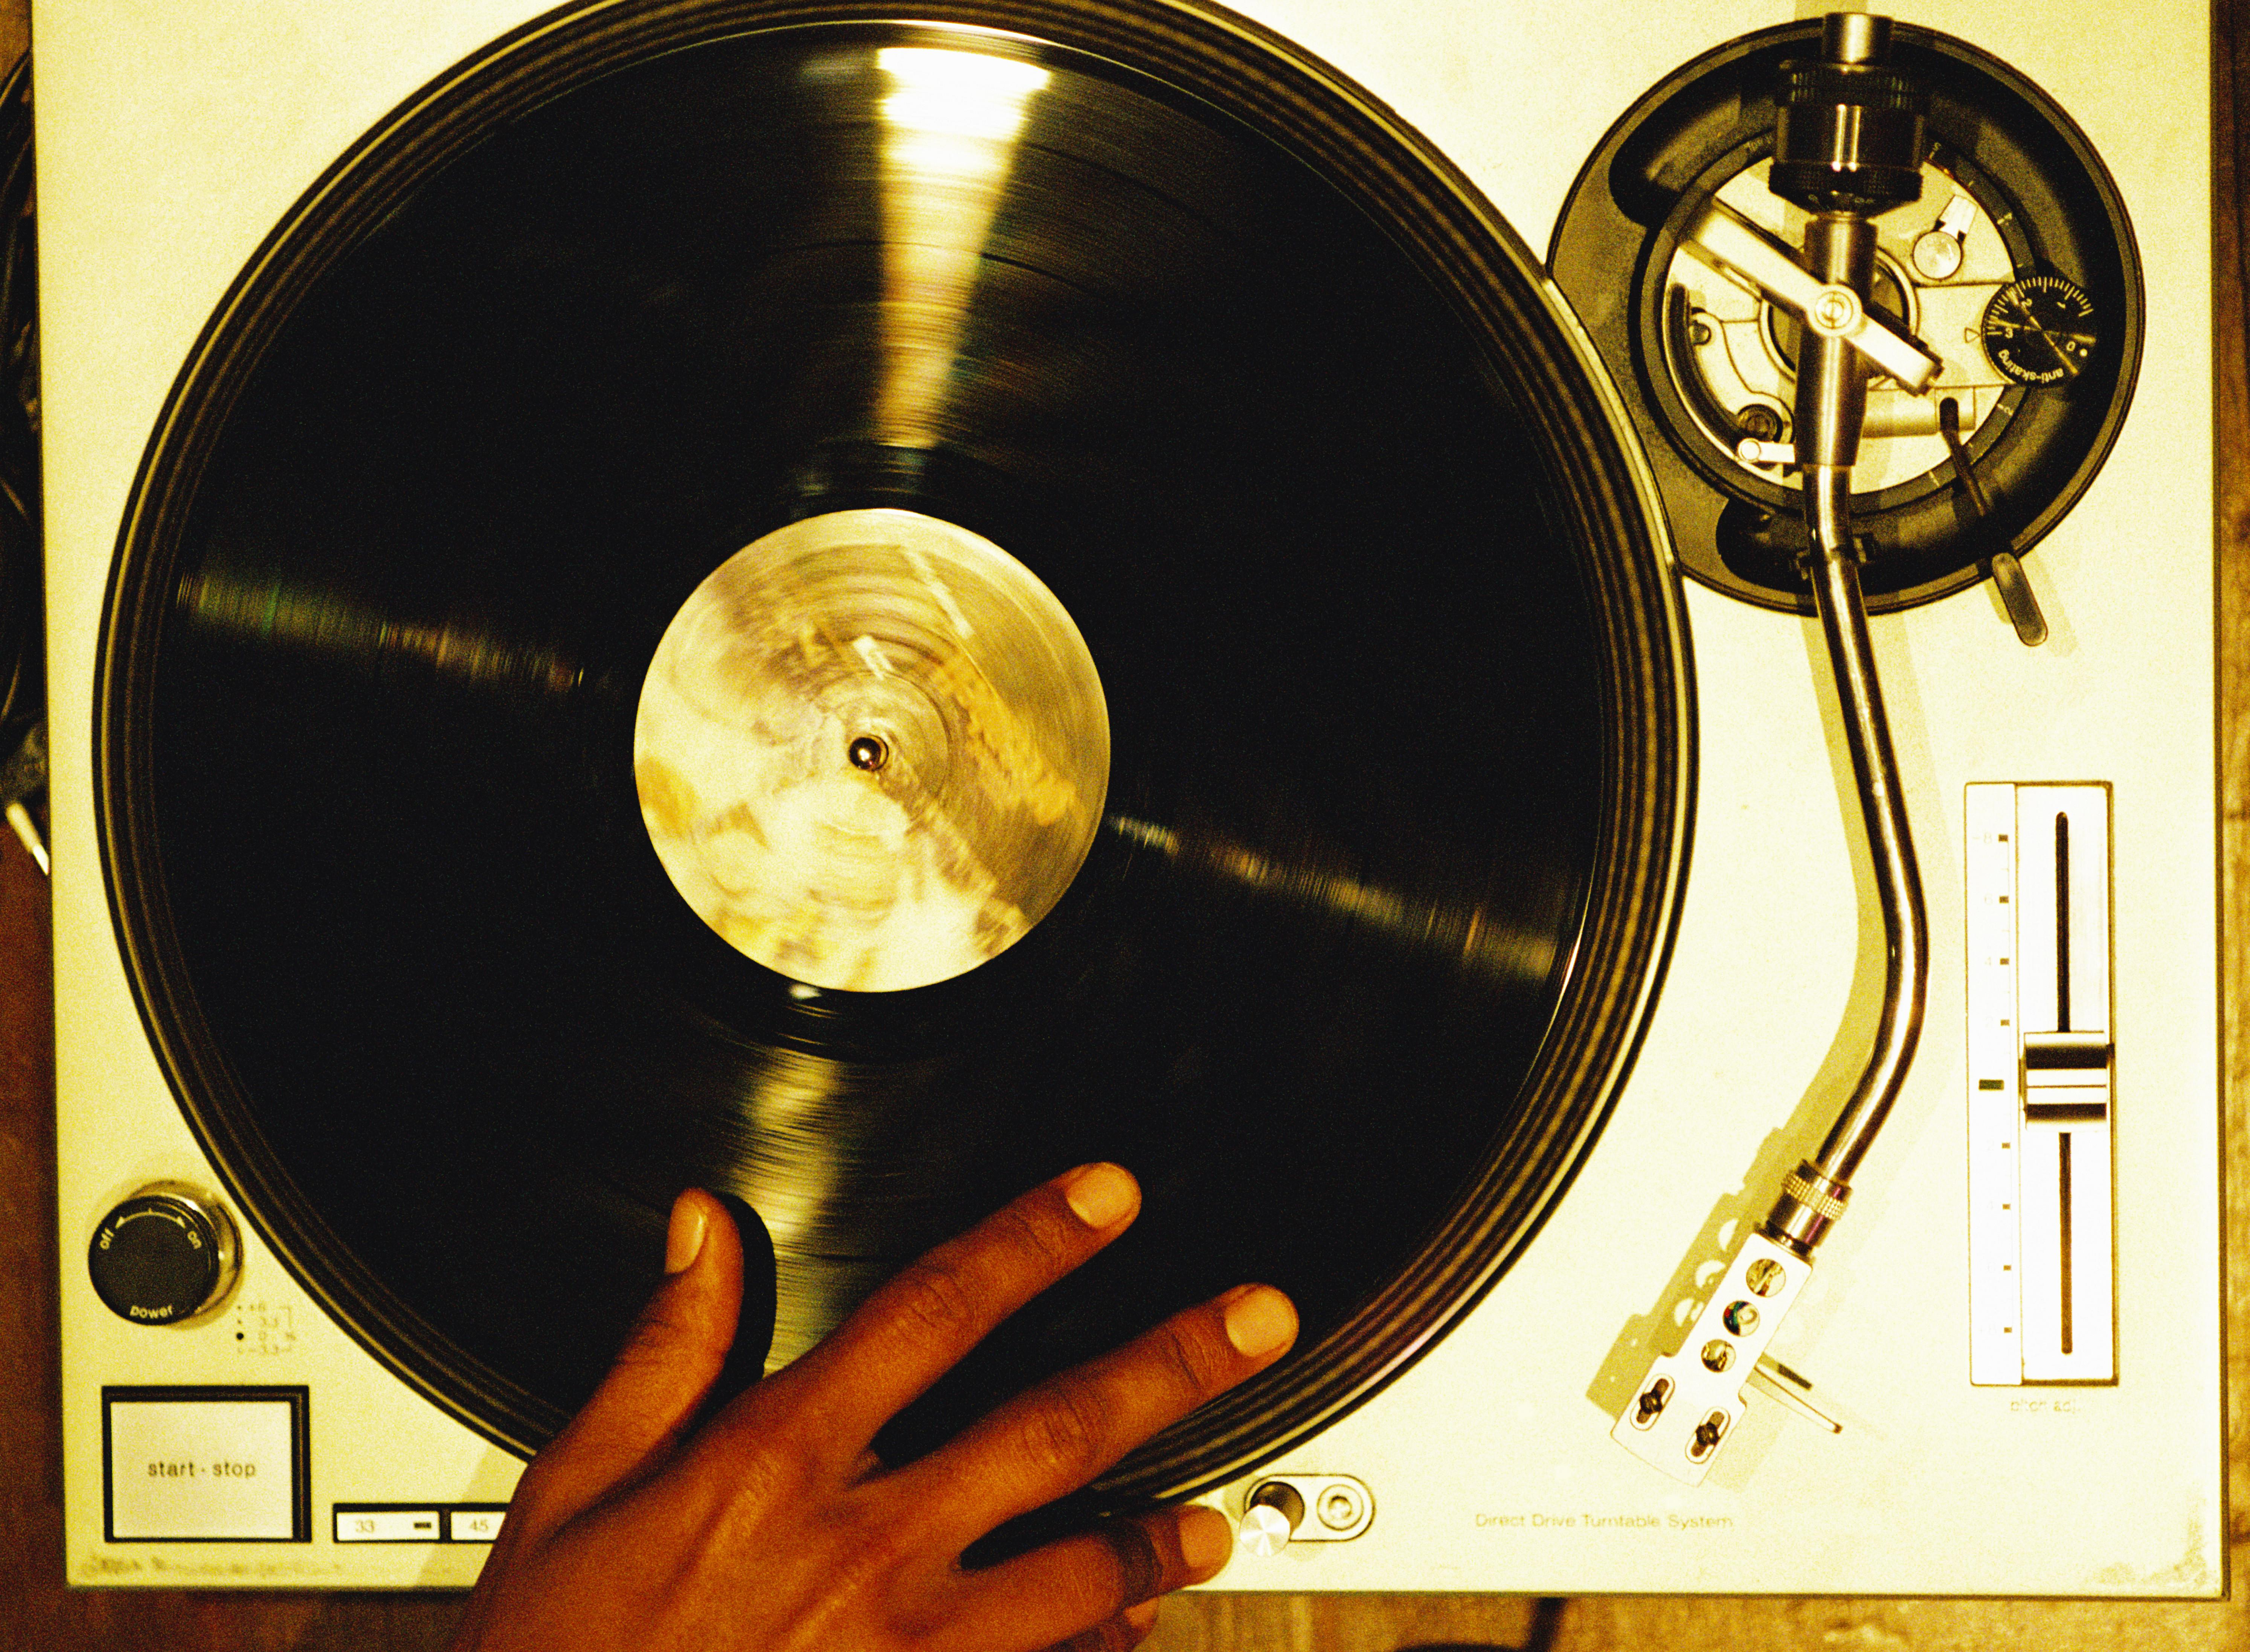 high angle close-up of a hand scratching a vinyl record on a turntable